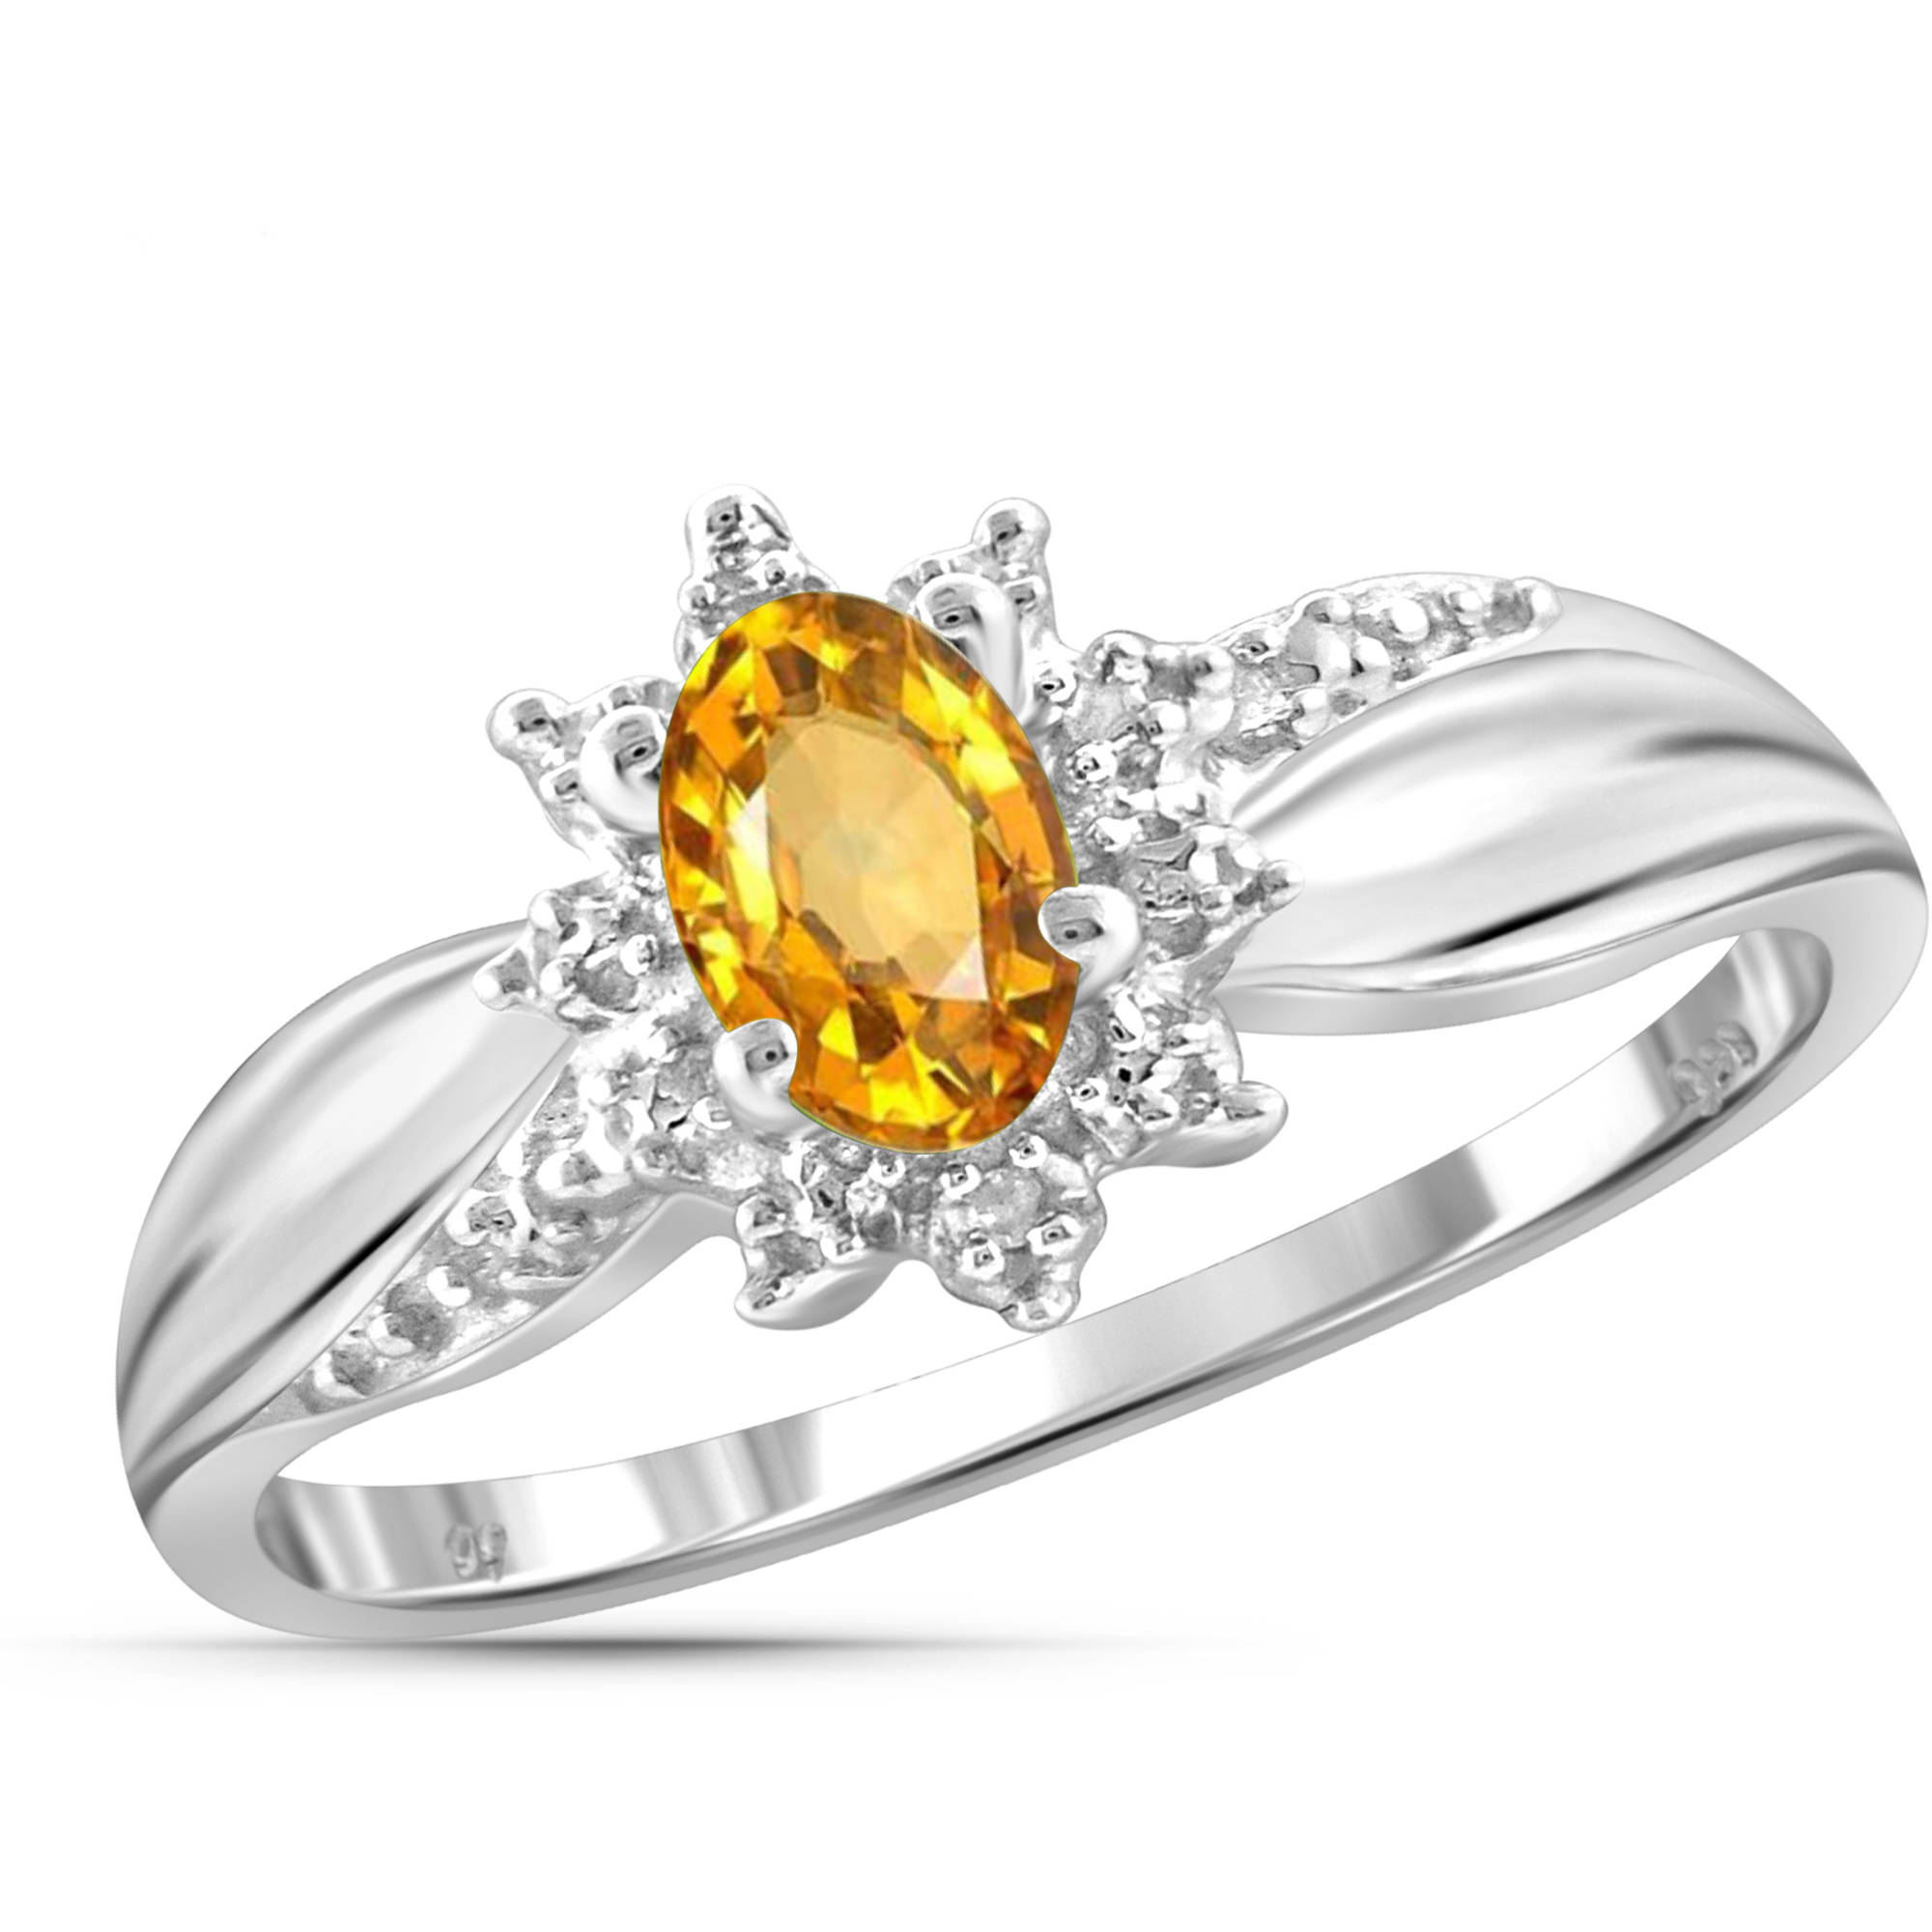 JewelersClub 0.46 Carat T.G.W. Citrine Gemstone and White Diamond Accent Ring